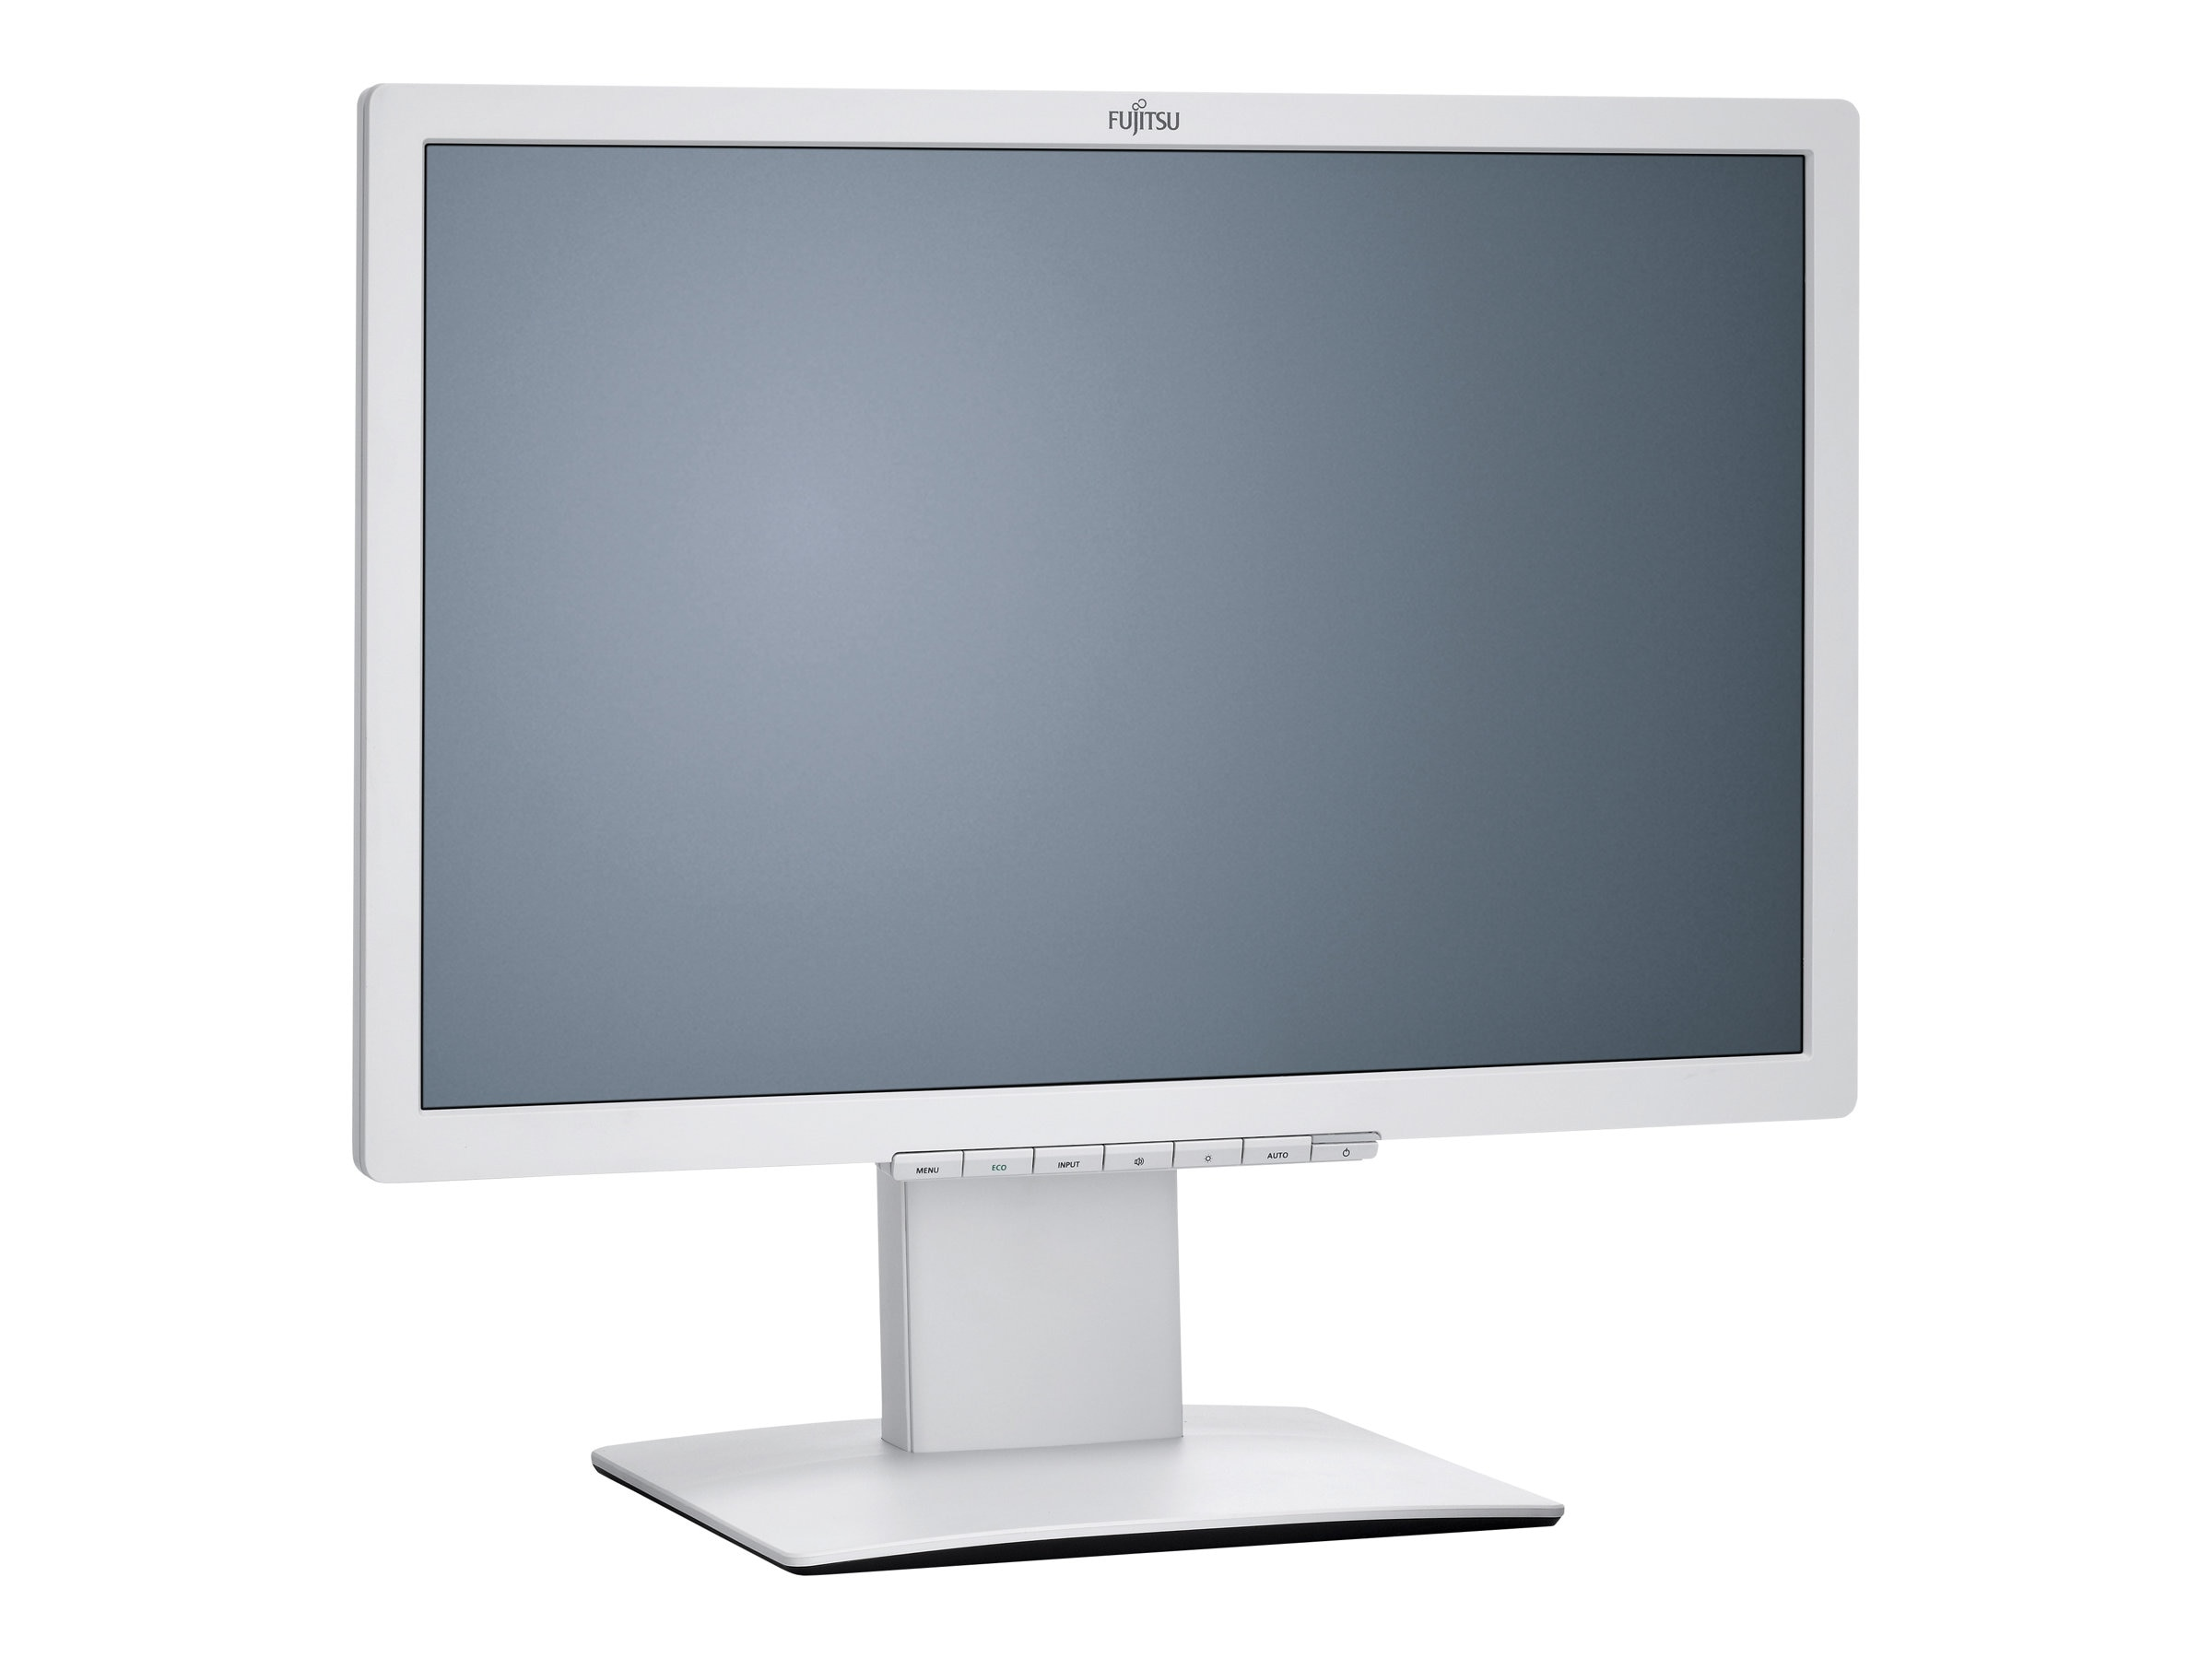 Fujitsu 22 B22W-7 LED-LCD Display, White, S26361-K1472-V140